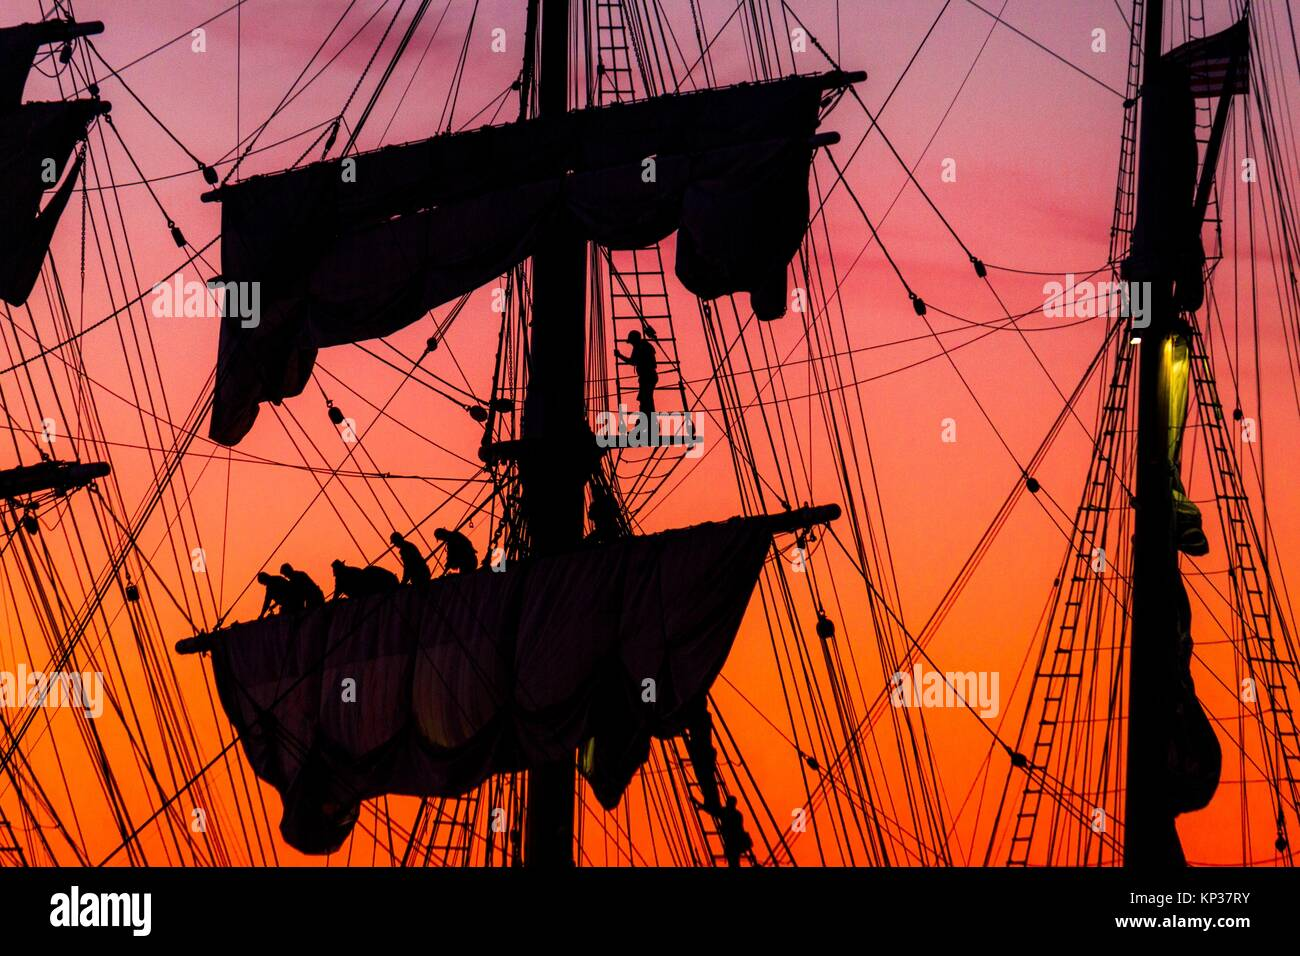 Sailors rolling up sails at sunset on the Star of India sailing ship in San Diego, CA - Stock Image